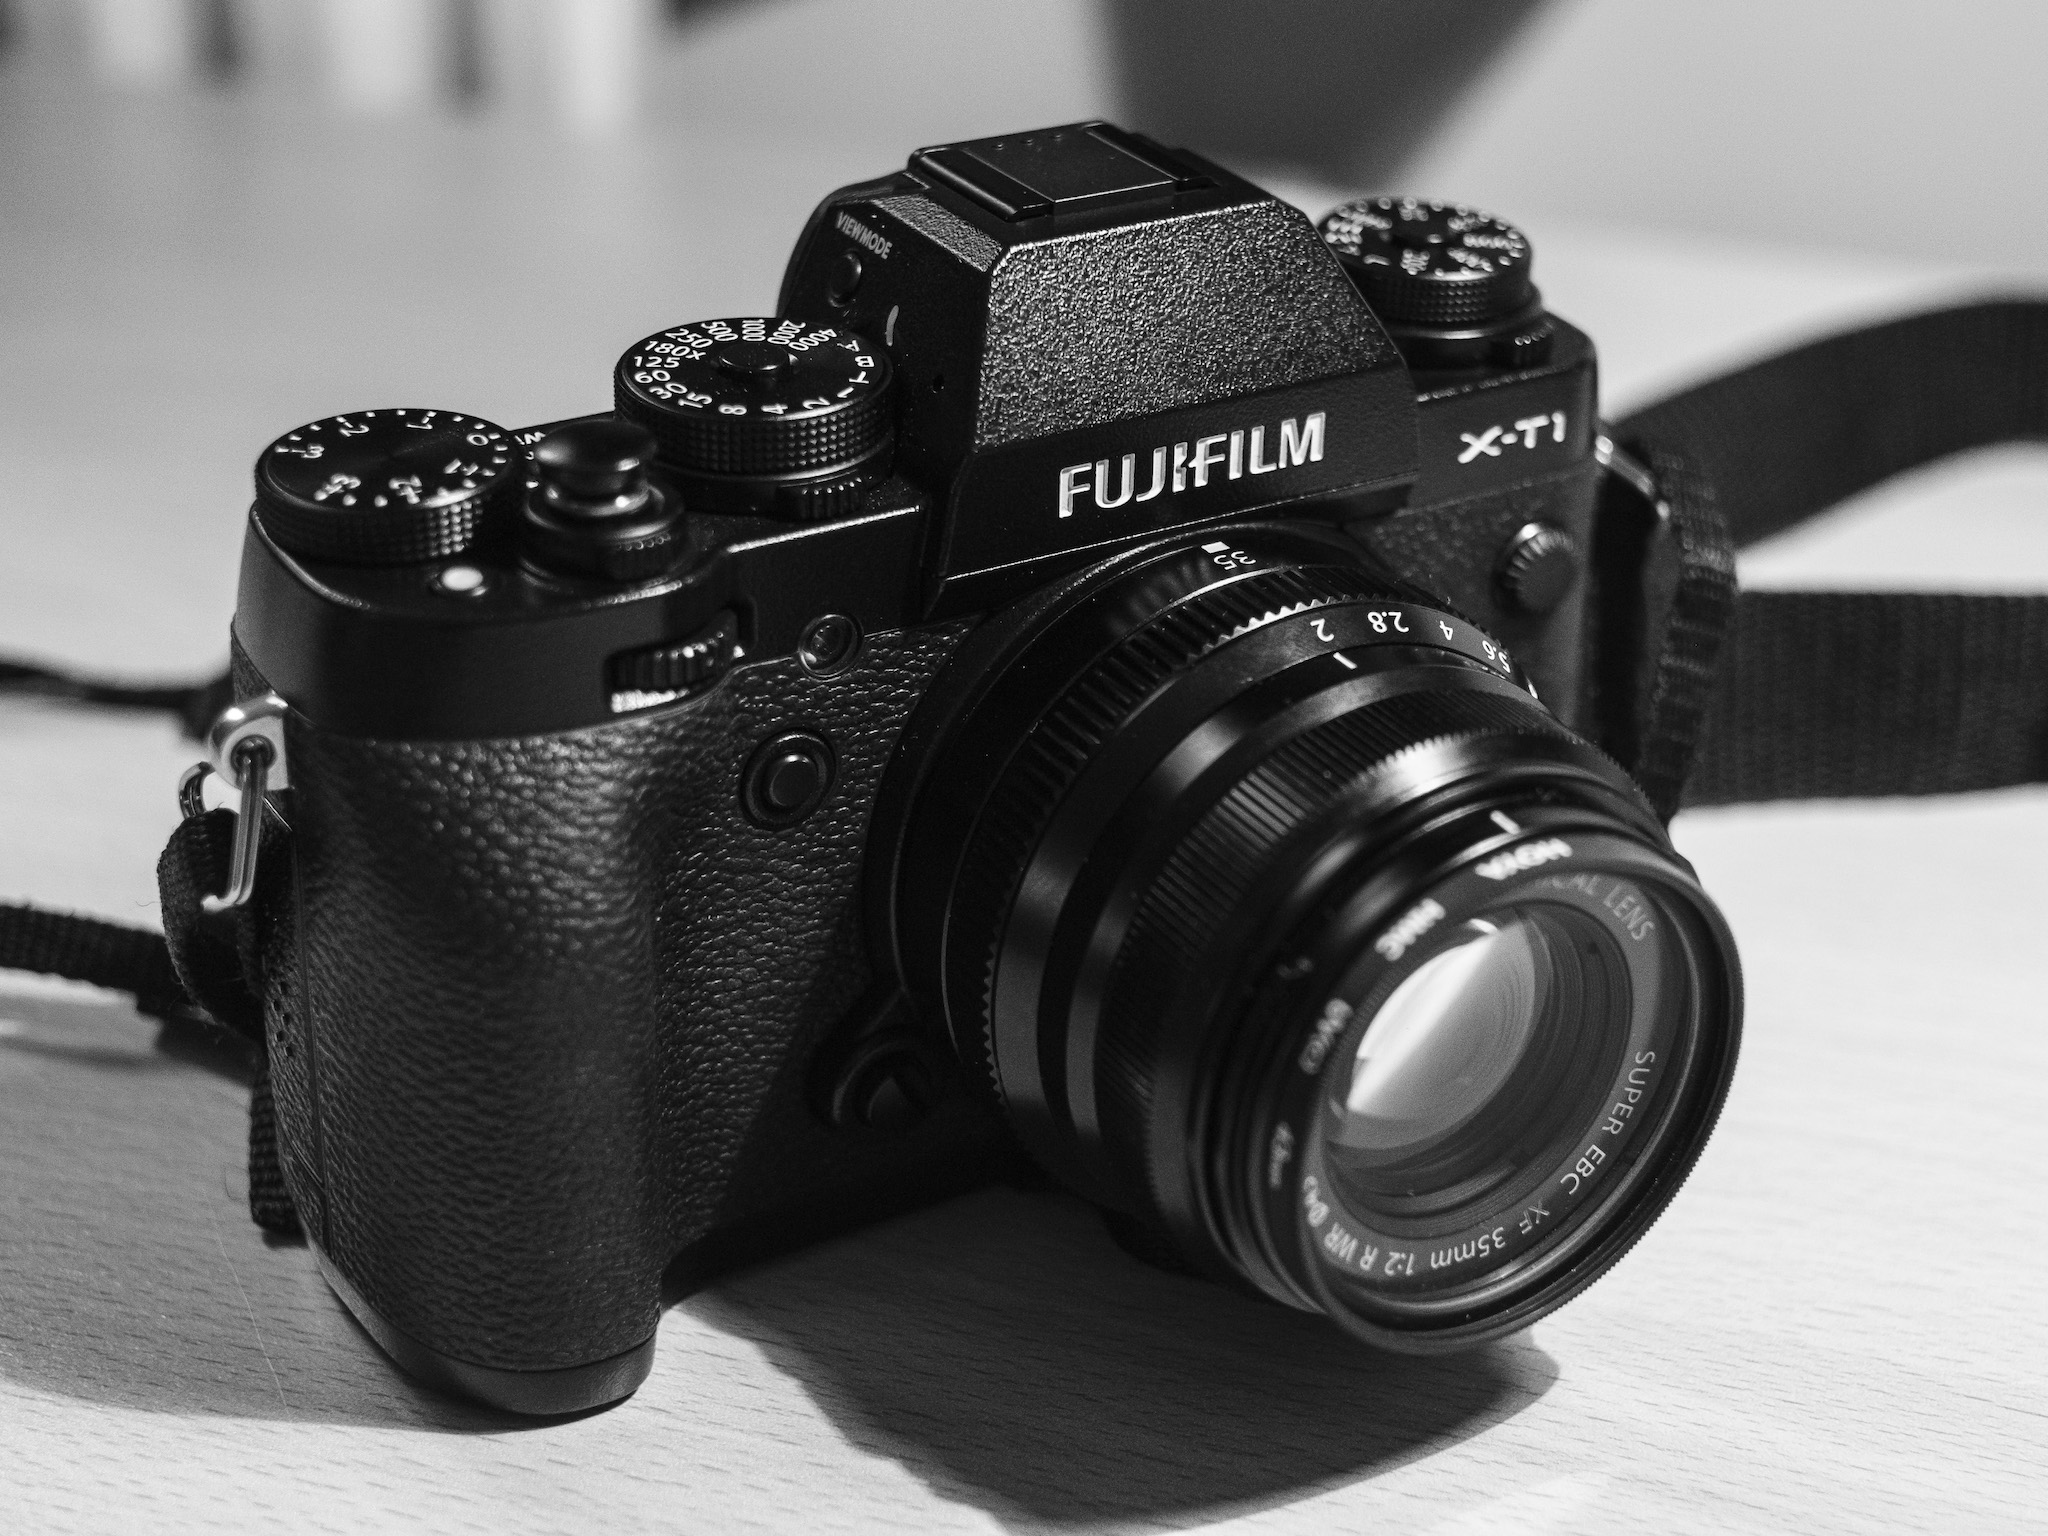 The XF35mm f/2 on the X-T1